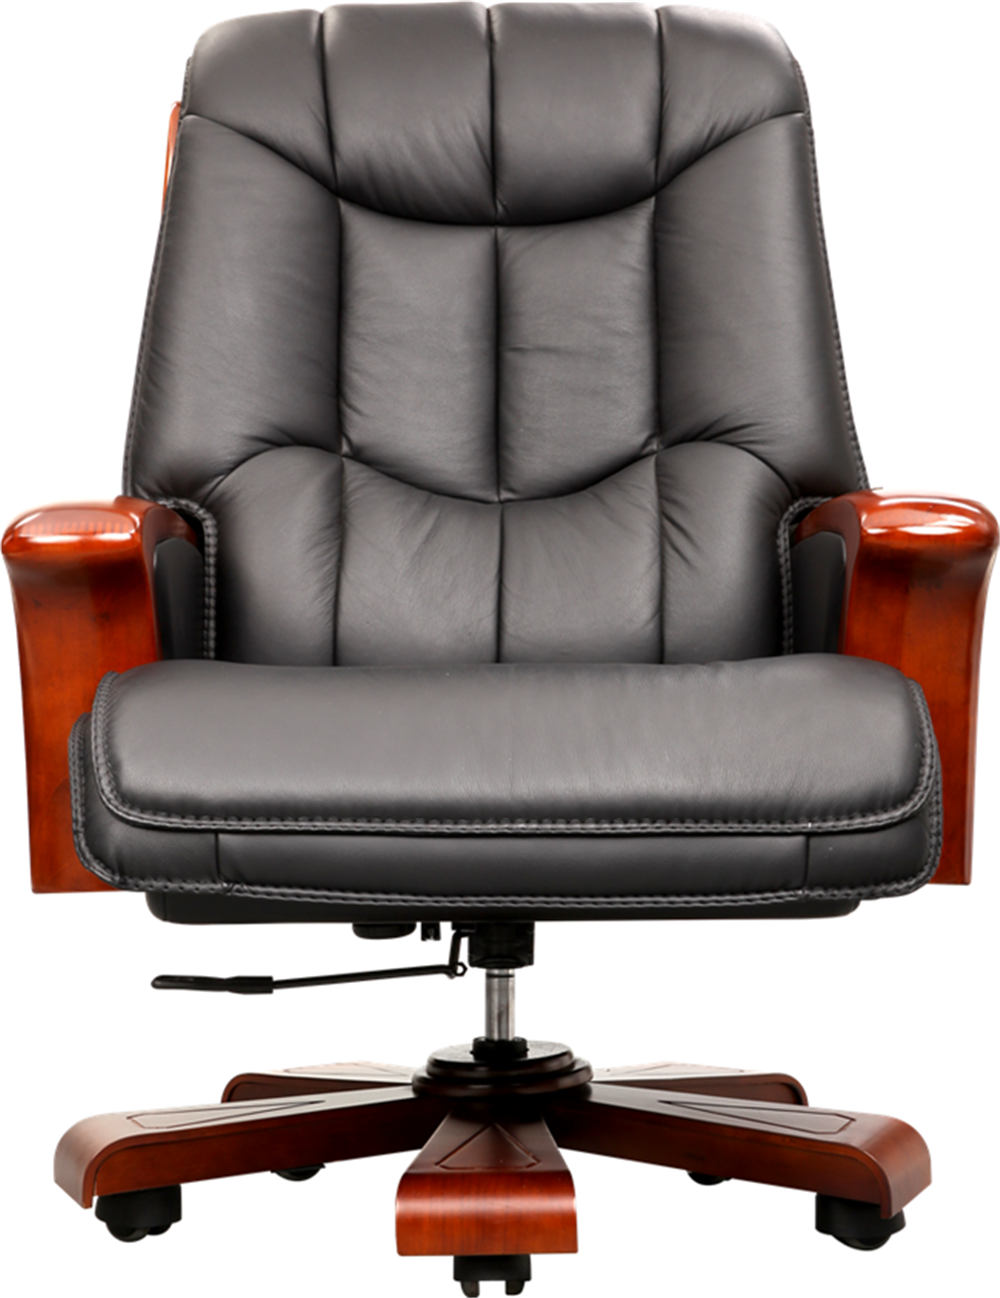 Classical Manager Boss Office Chair Italian Leather Swivel Chair